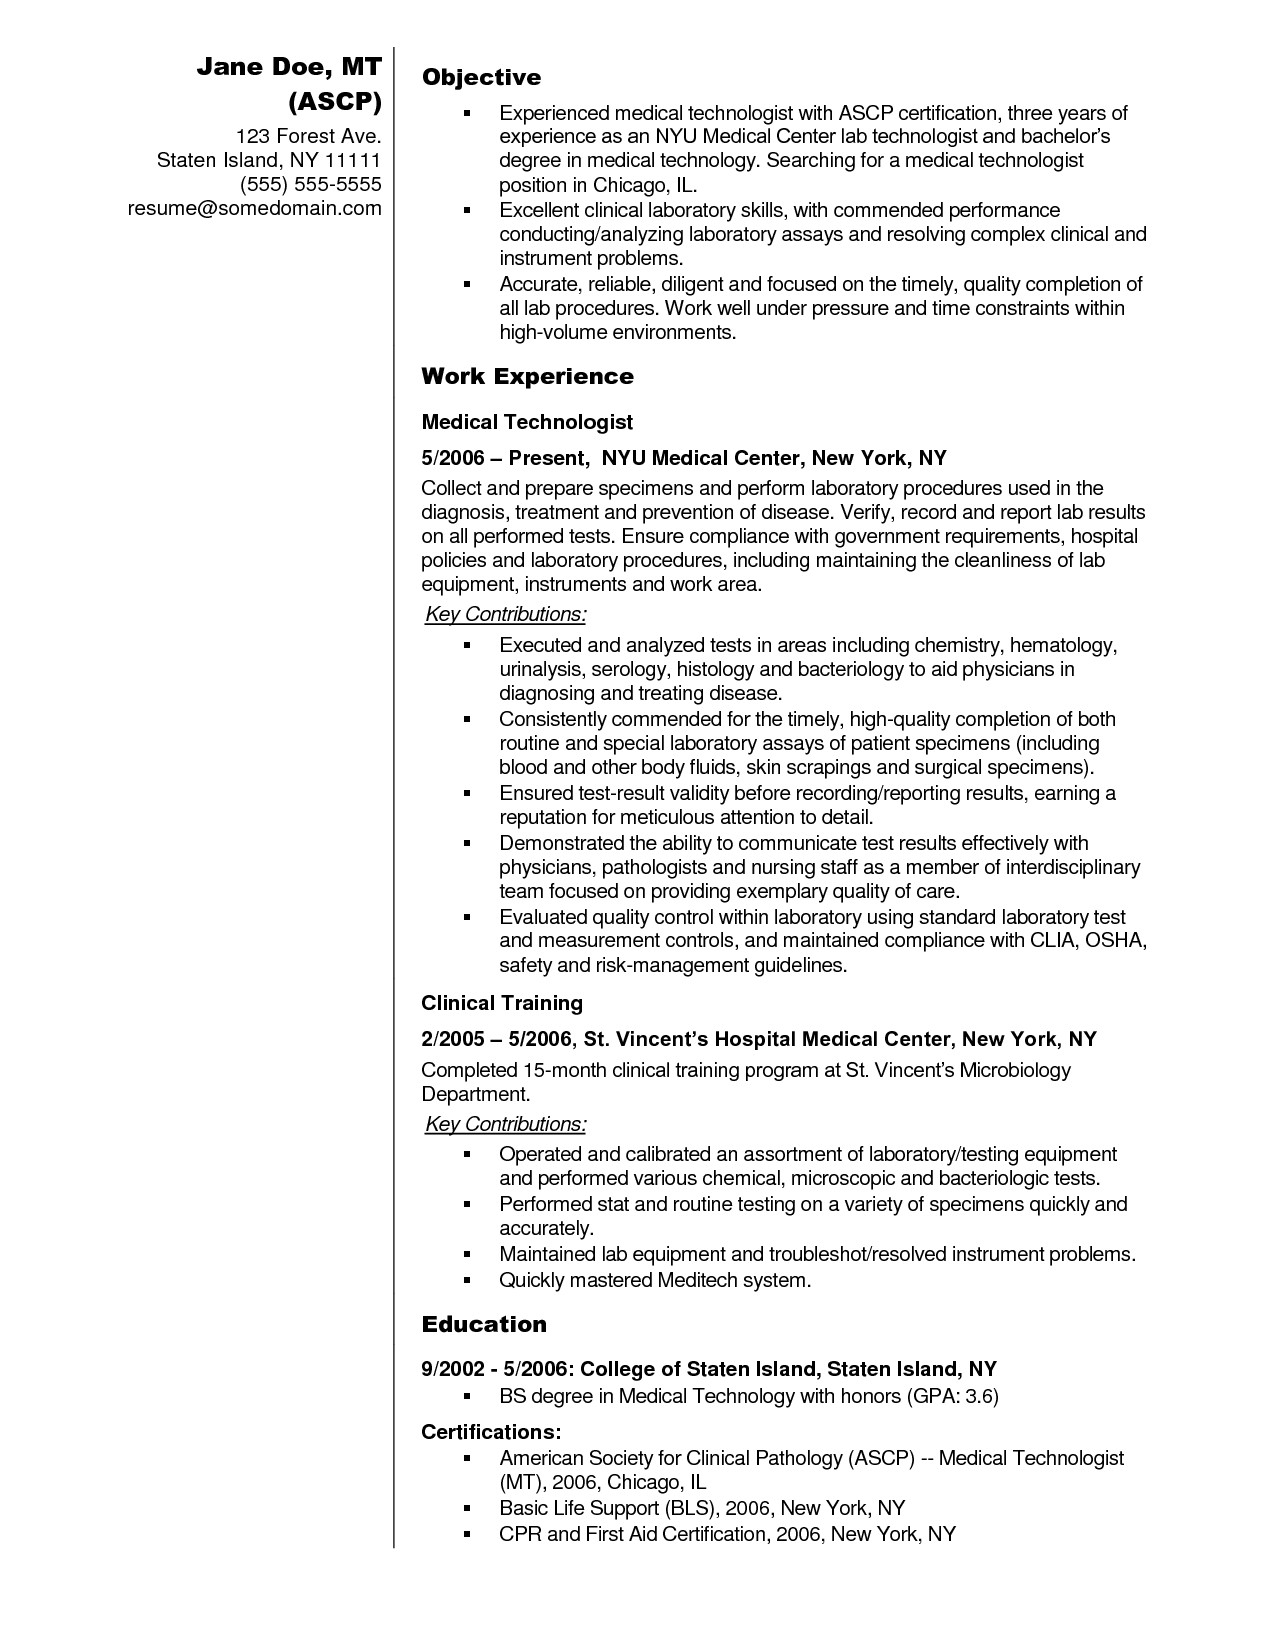 Sample Resume for Medical Technologist In the Philippines Sample Resume Medical Technologist Philippines 2